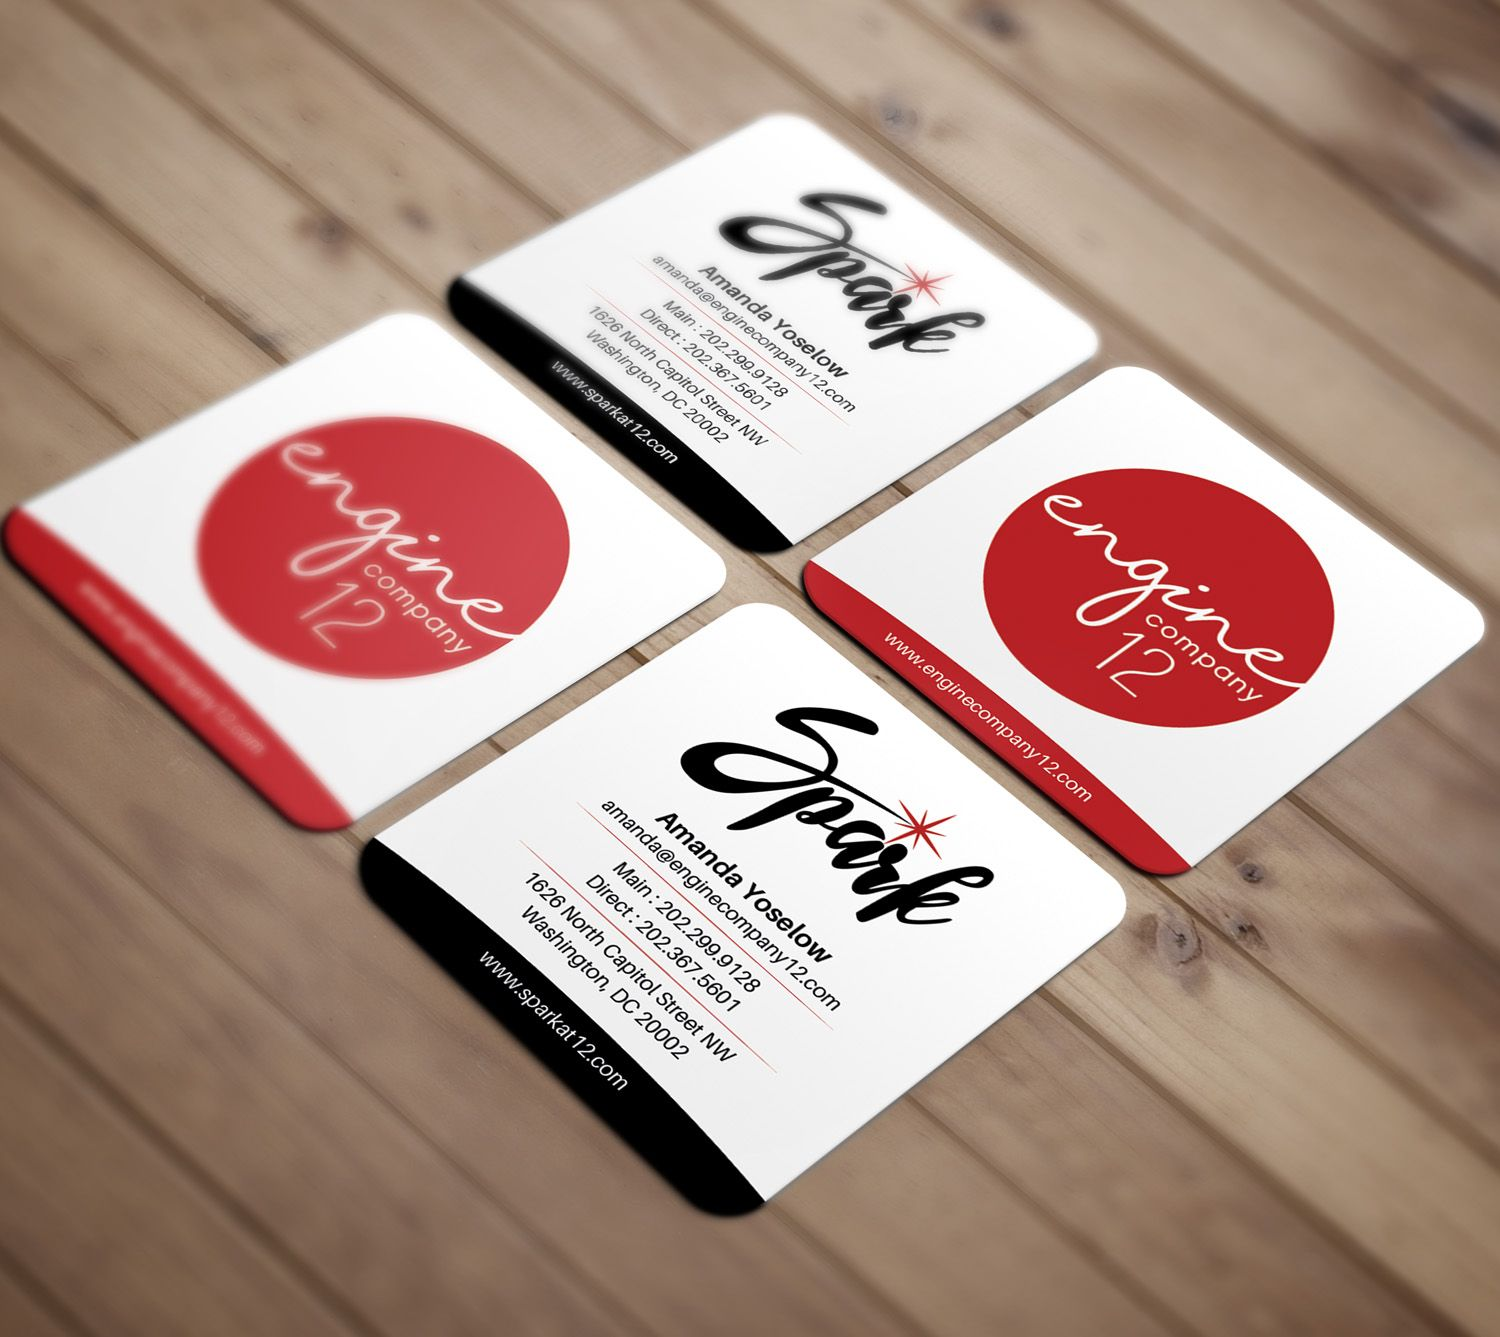 171 Business Card Designs Business Business Card Design Project For A Business In United States Square Business Cards Card Design Business Design